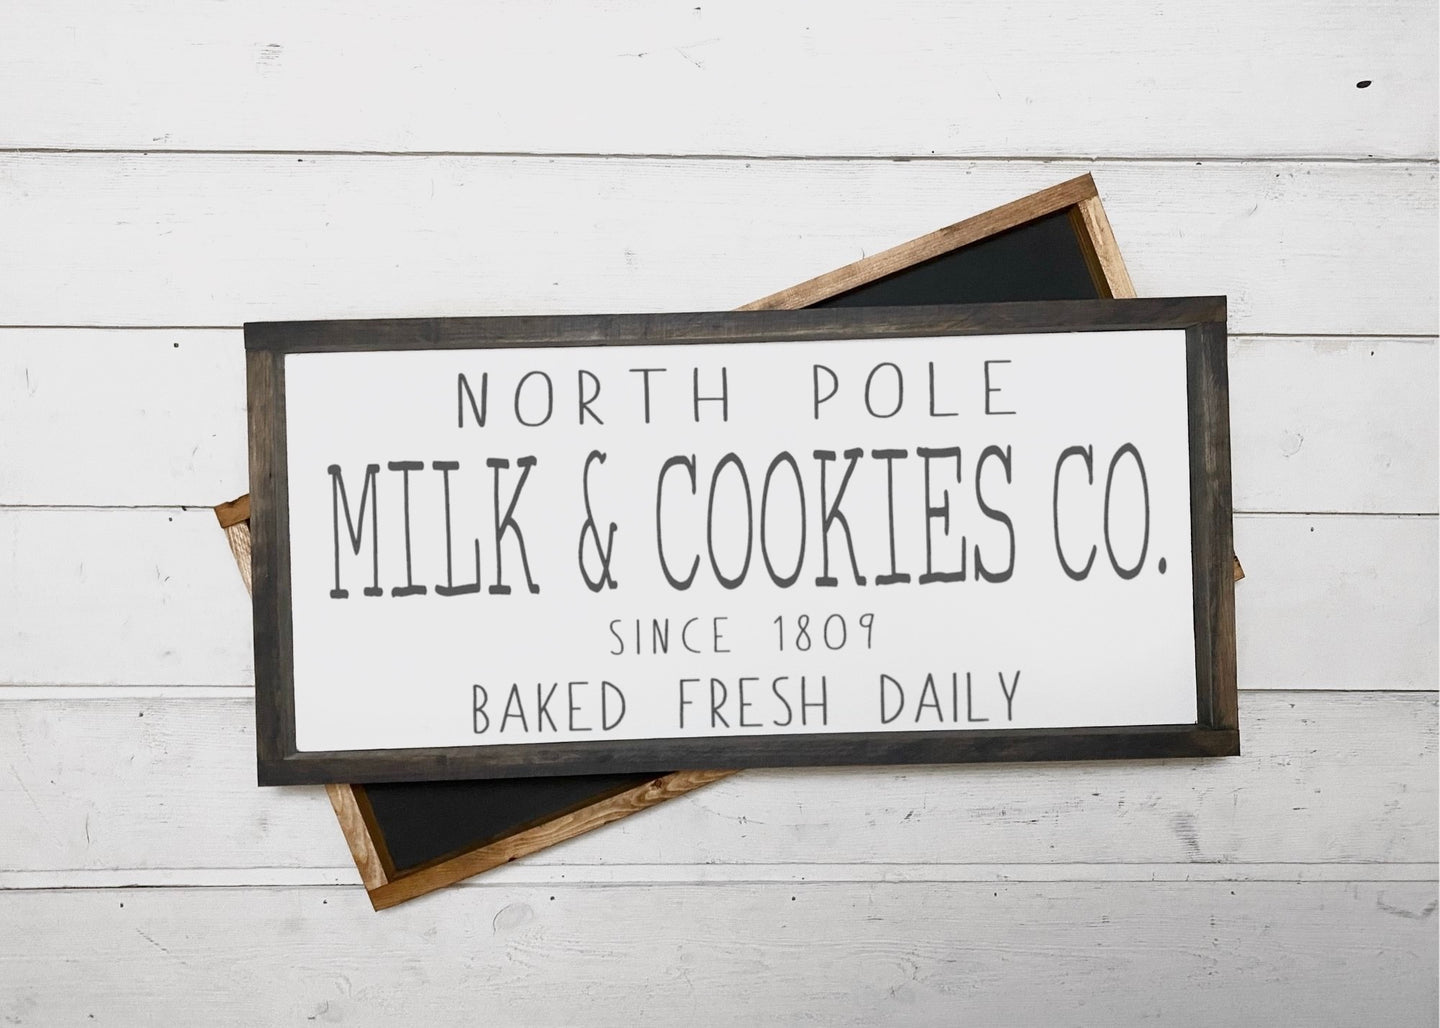 North Pole - Milk and Cookies CO.